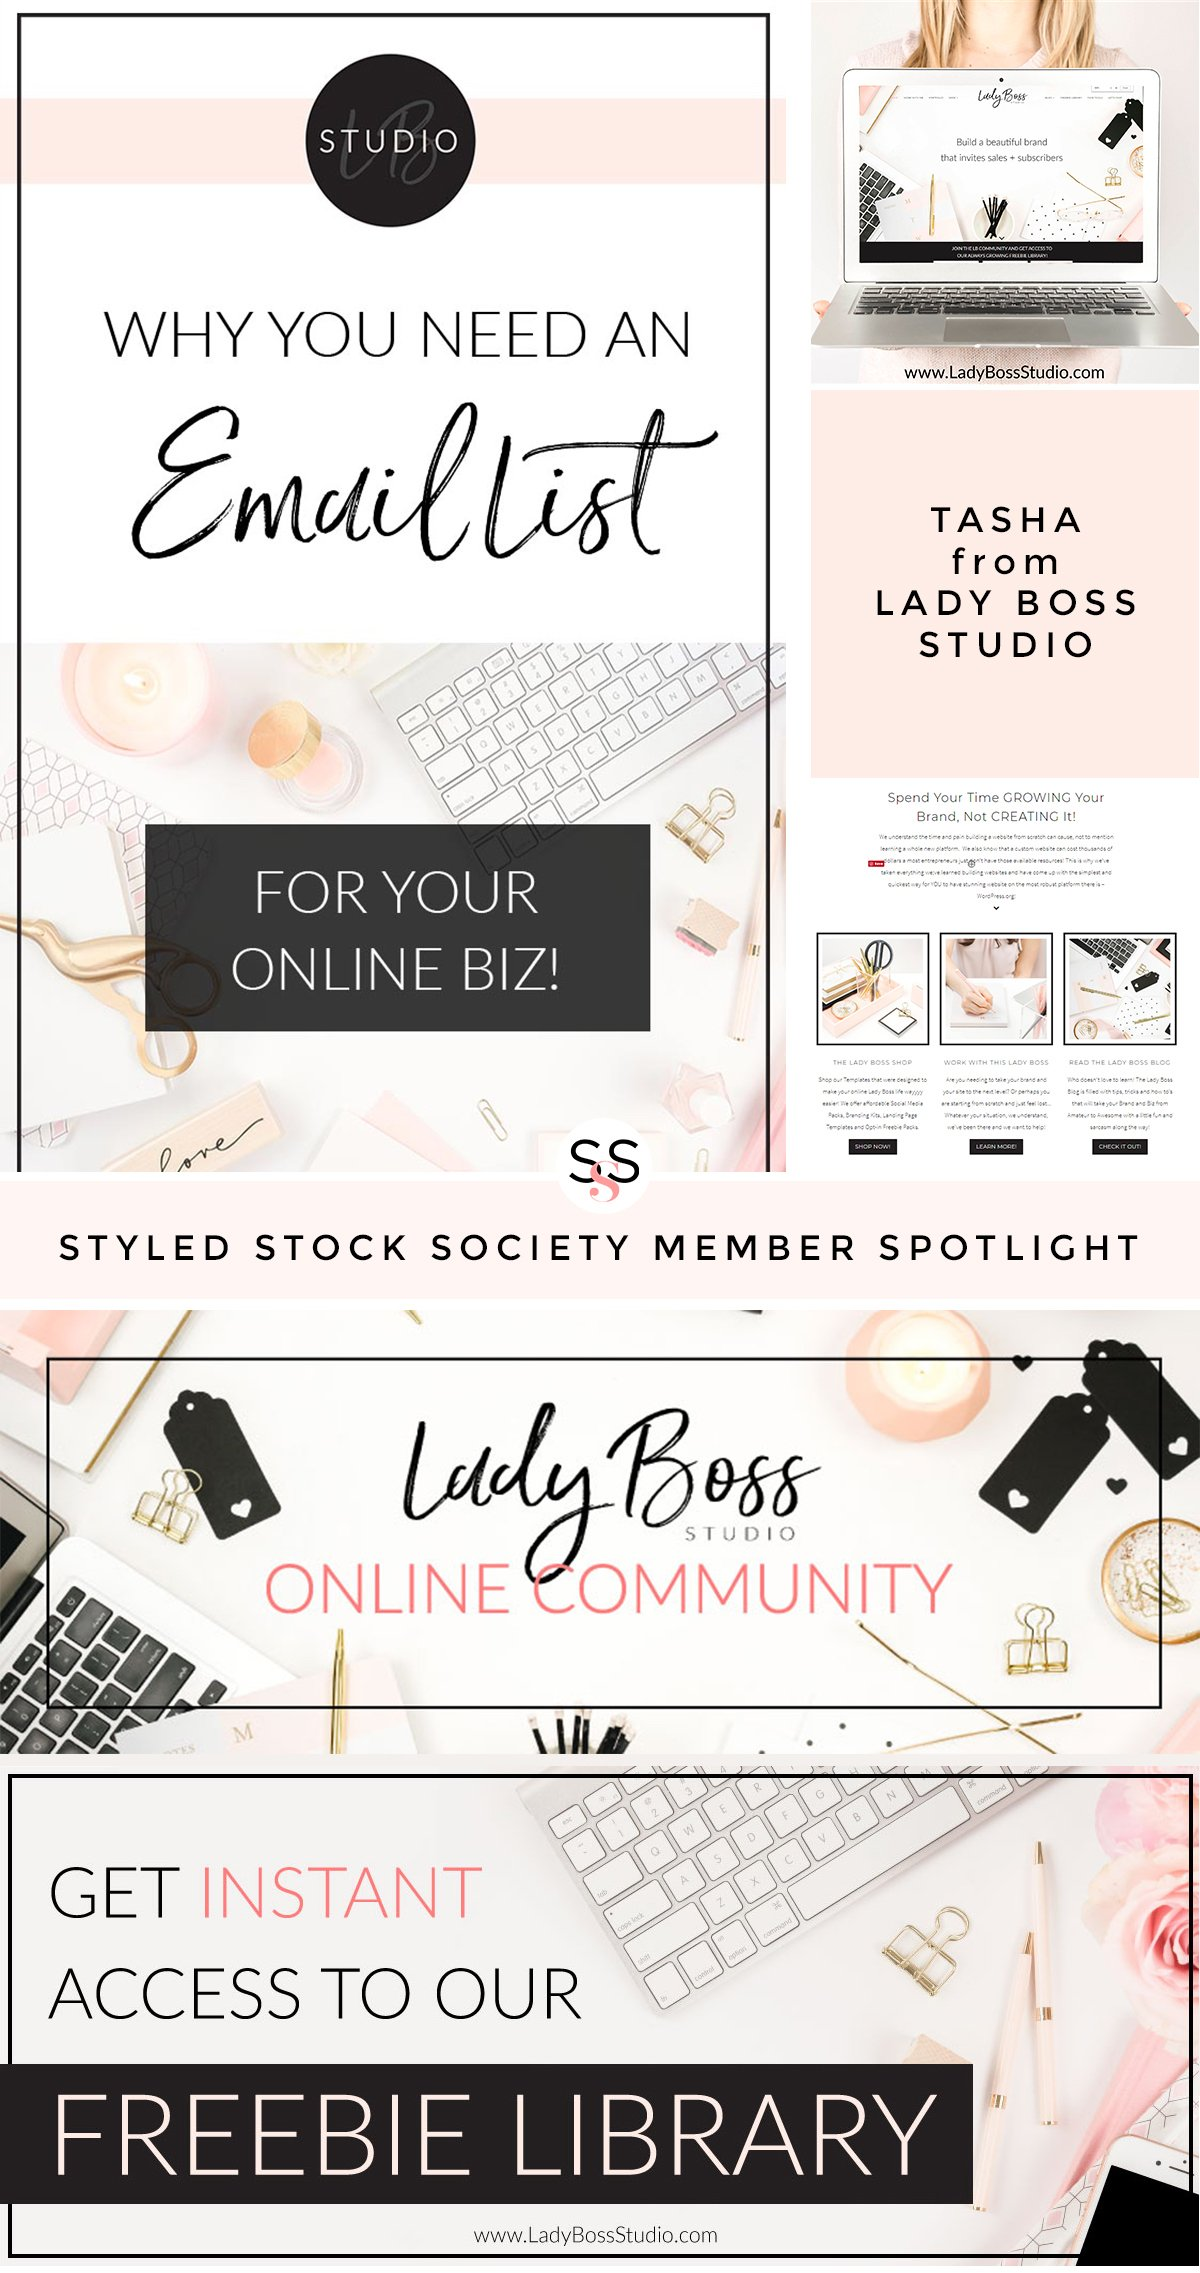 Styled Stock Society Member Feature: Tasha from Lady Boss Studio